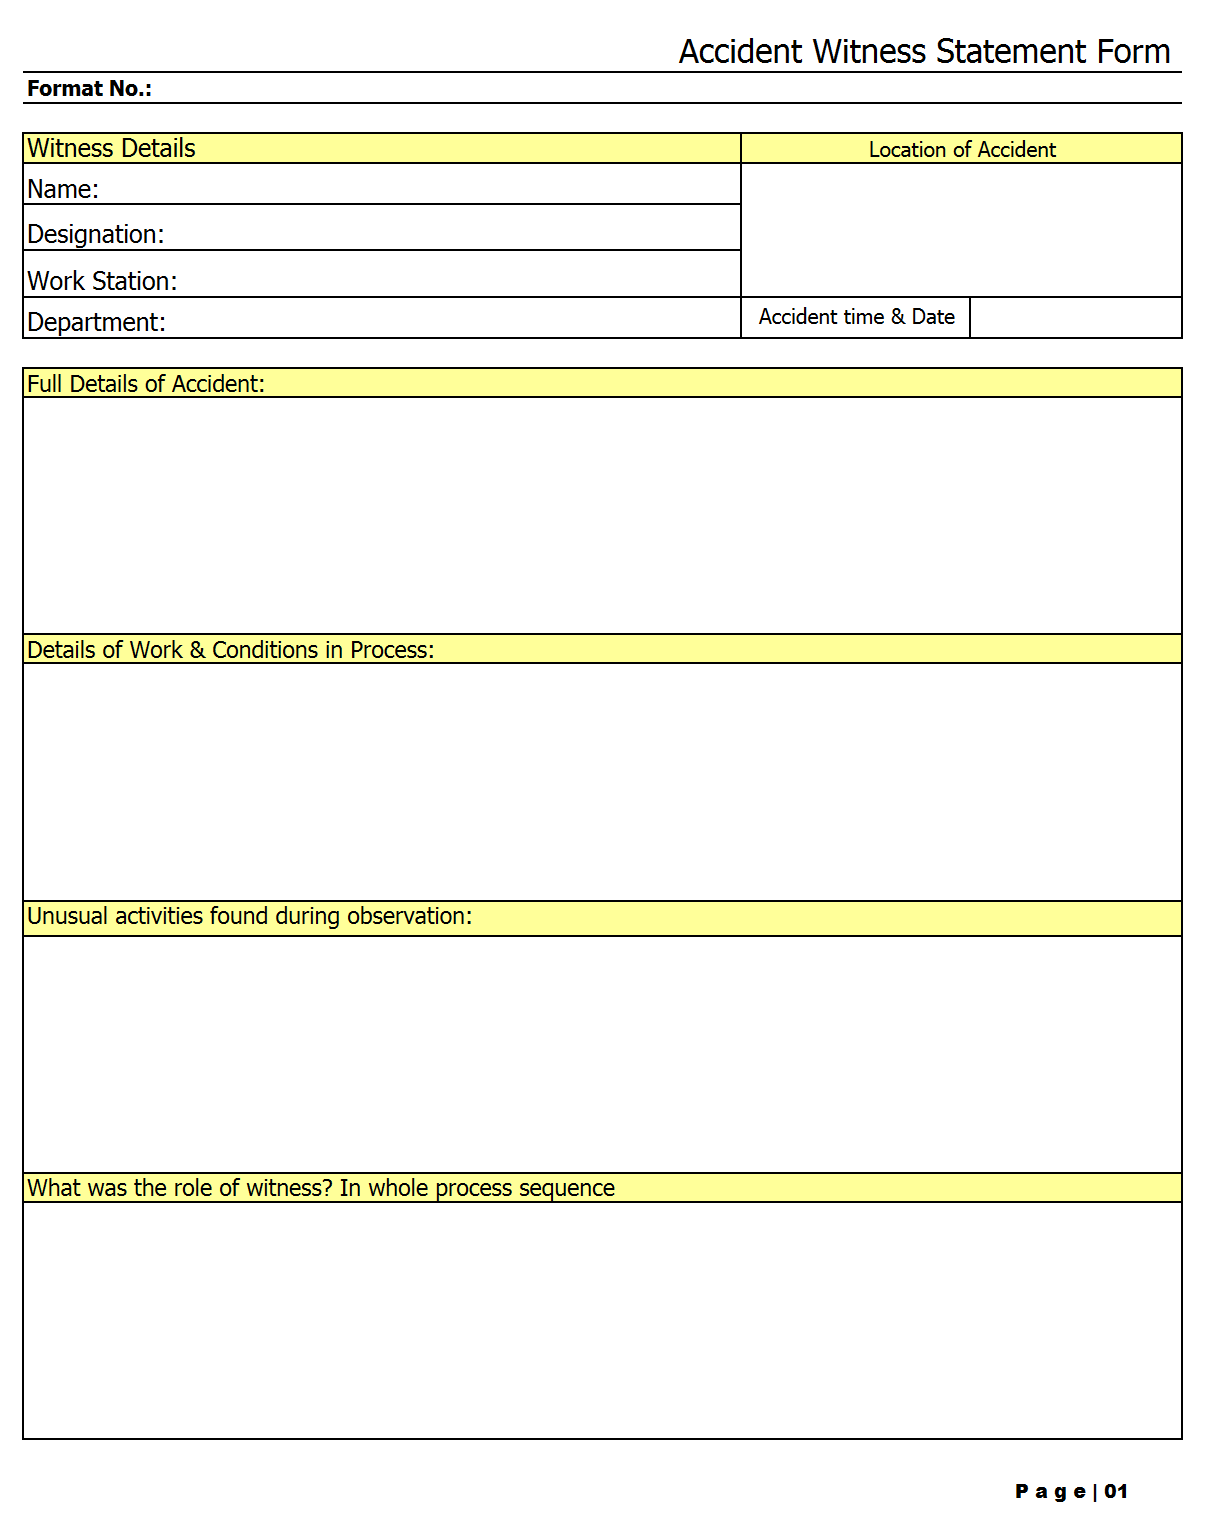 Accident witness statement form template format excel pdf sample accident witness statement form page 01 altavistaventures